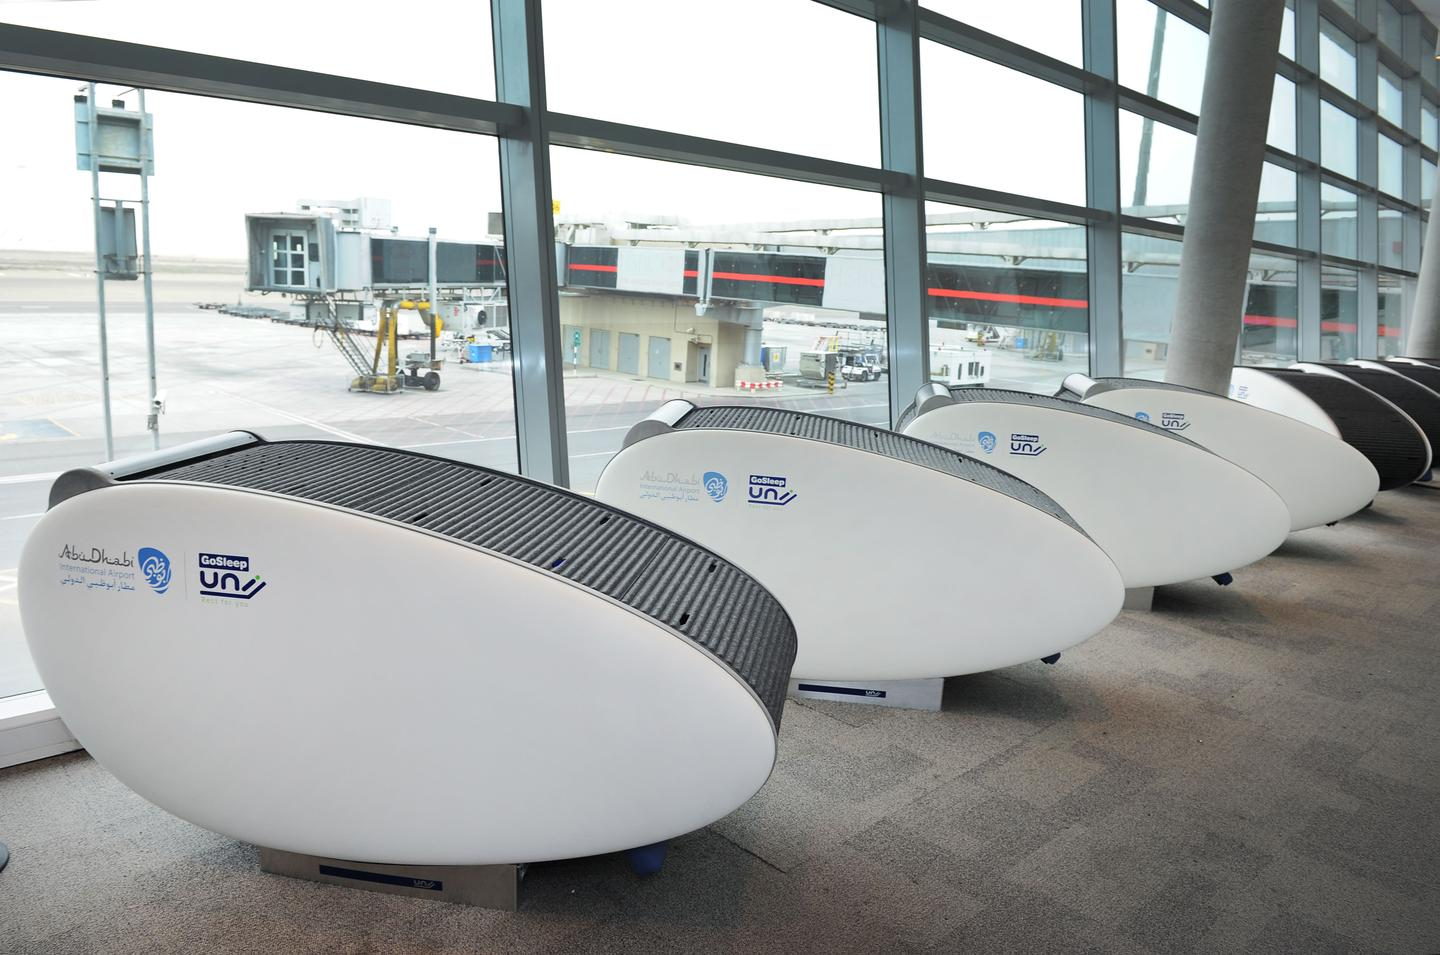 Ten GoSleep pods have been installed at Abu Dhabi International Airport to give weary travelers a private place to rest up